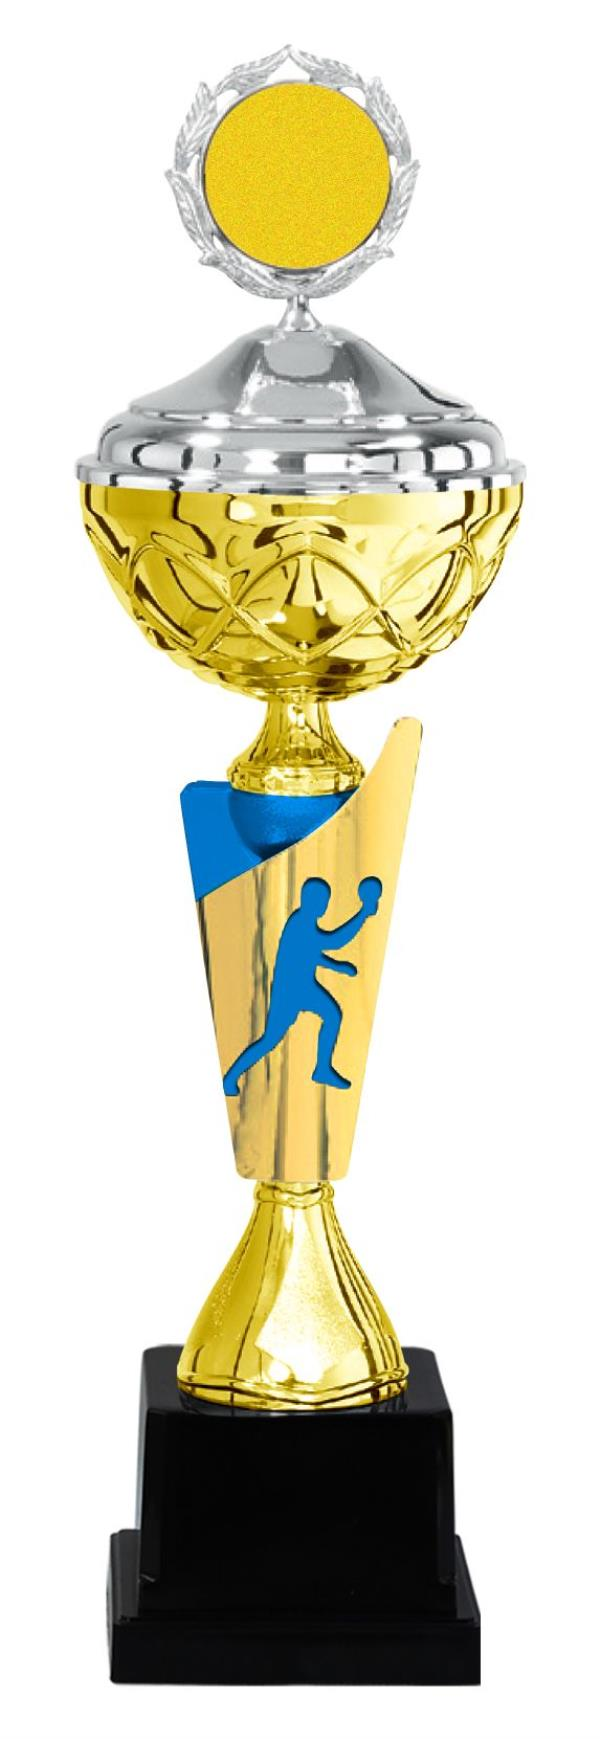 Fibre trophies with